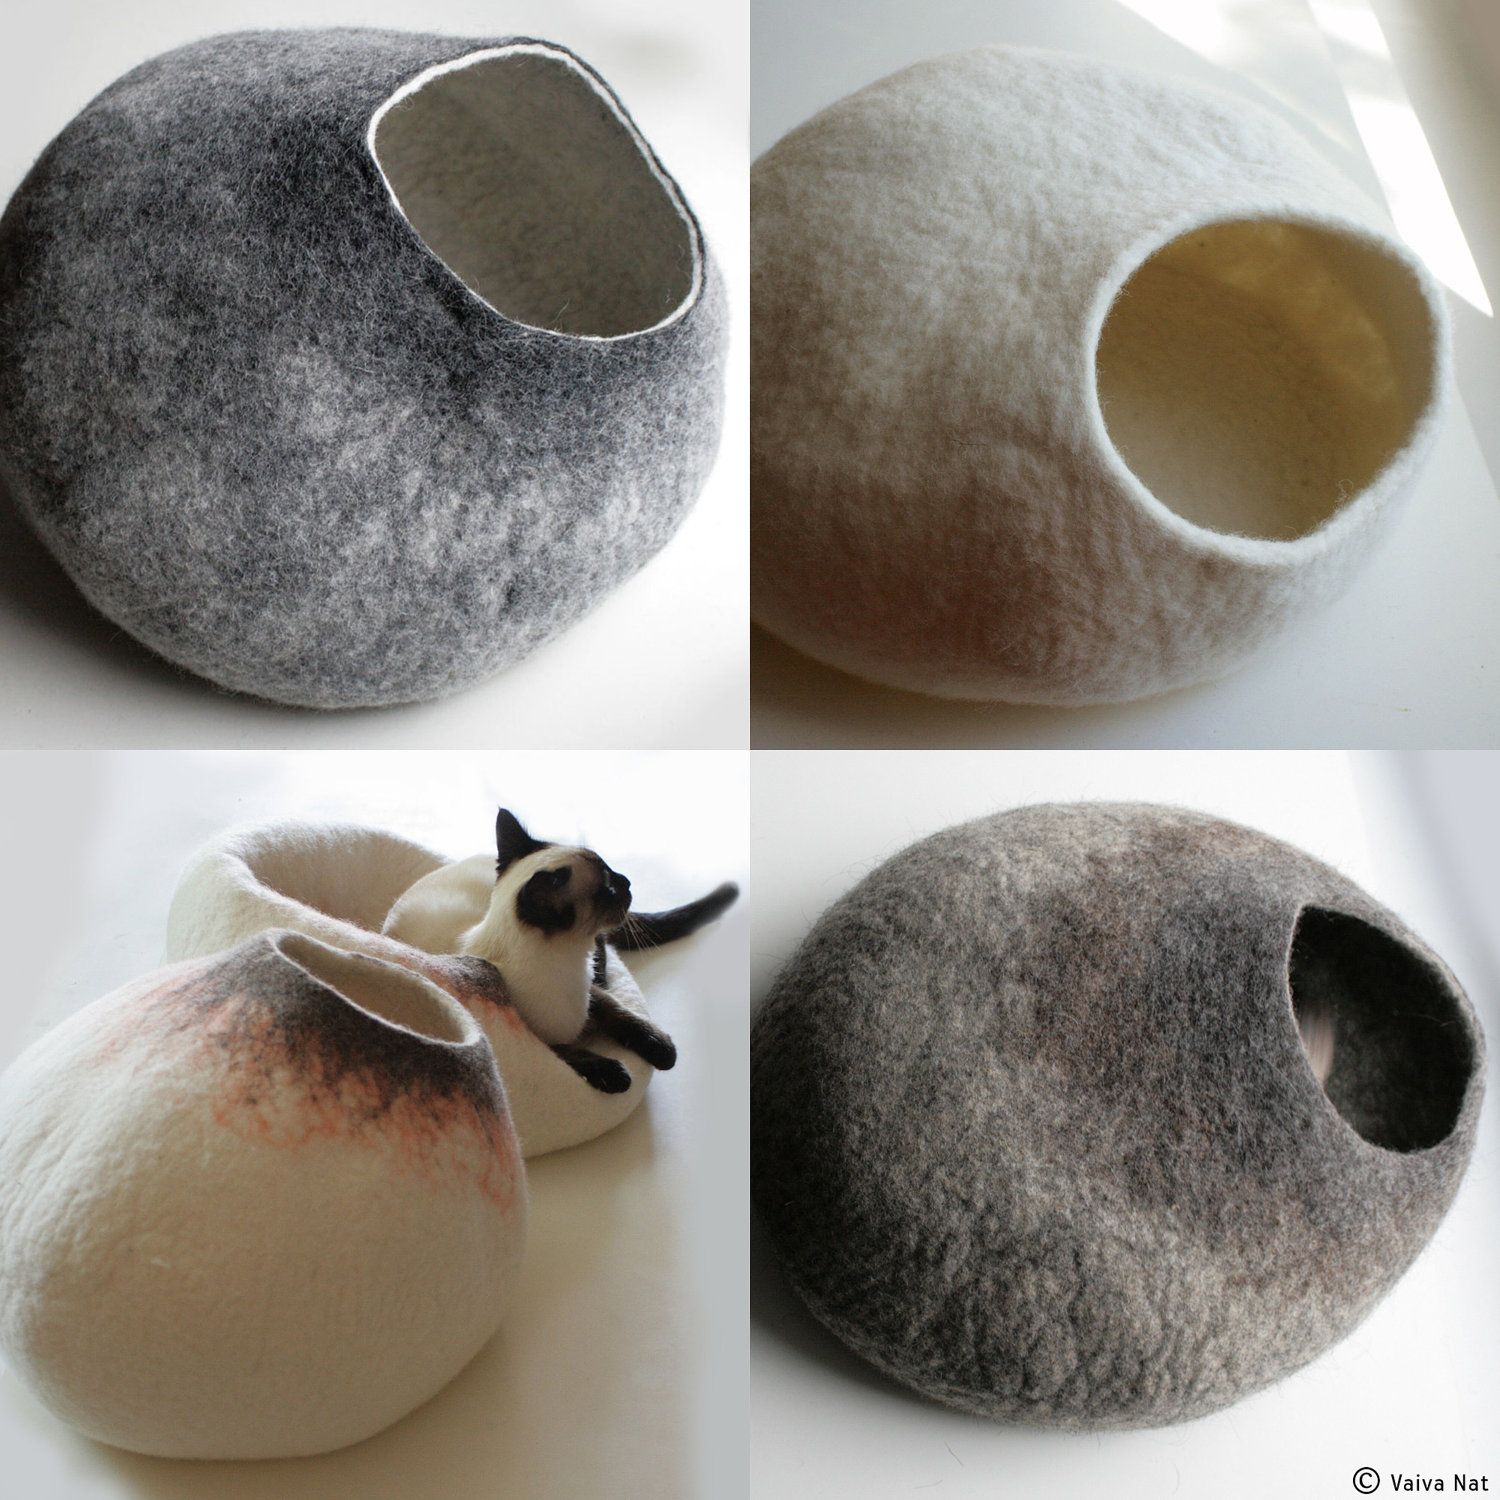 custom felted cat bed  hand felted wool cat bed  vessel  crisp  - ask for custom felted cat bed  hand felted wool cat bed  vessel  crispcontemporary design